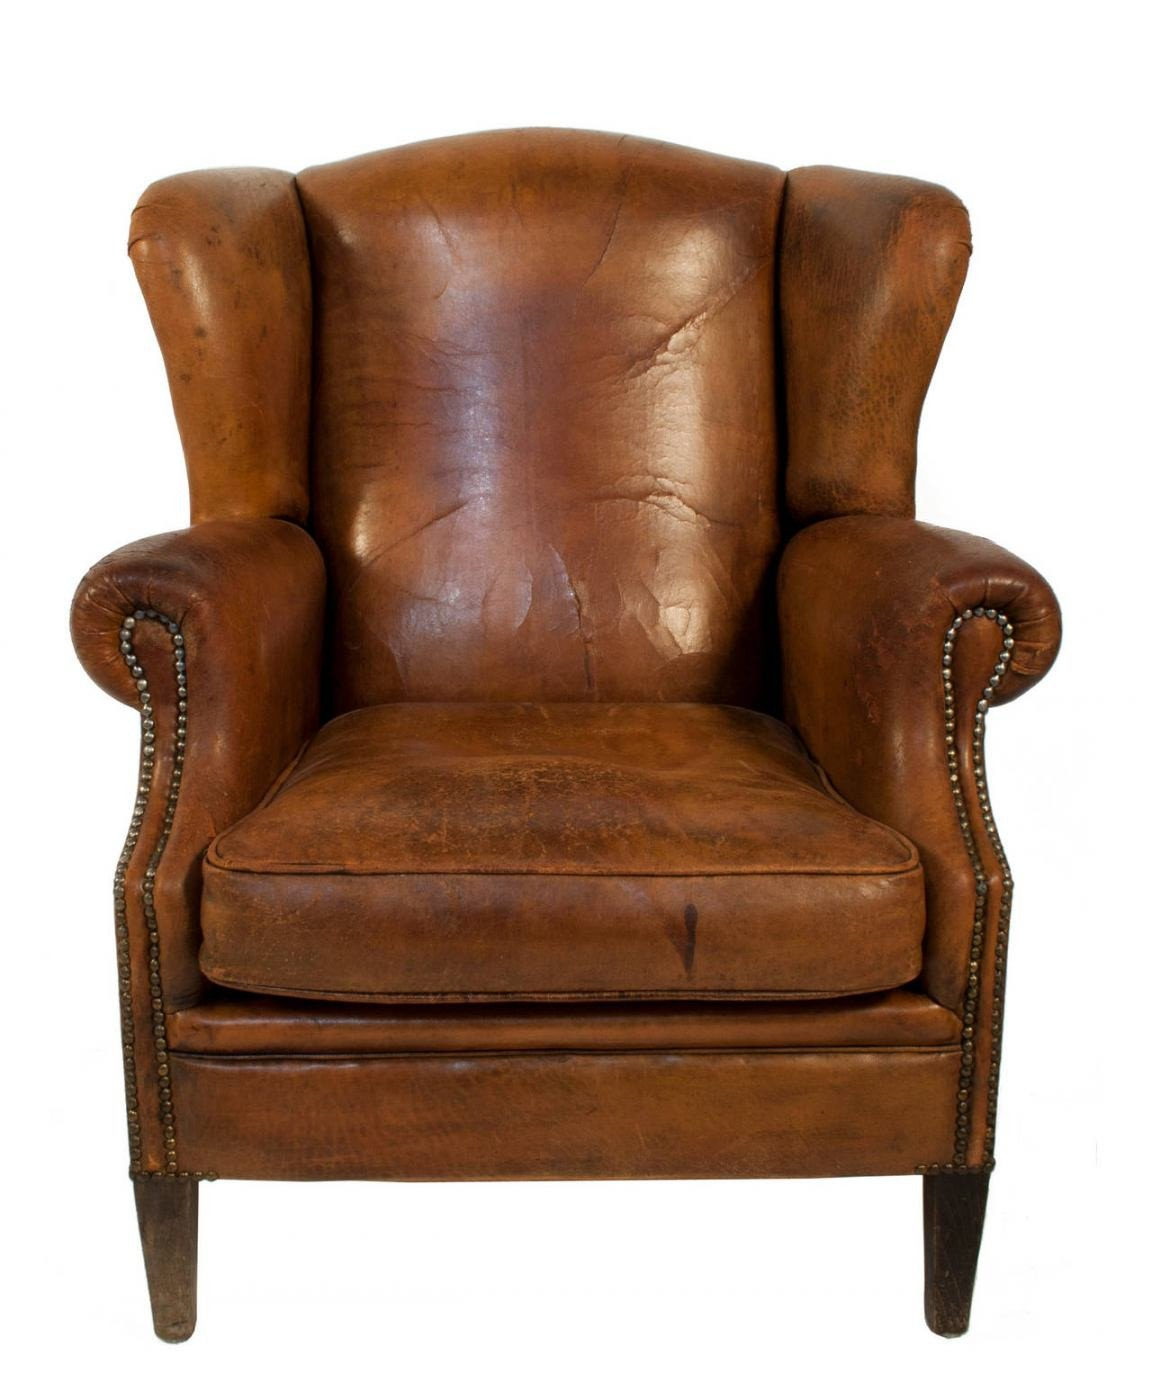 Most Comfortable Living Room Chair Beautiful fortable Lounge Chairs Furniture Ideas Funky Armchairs